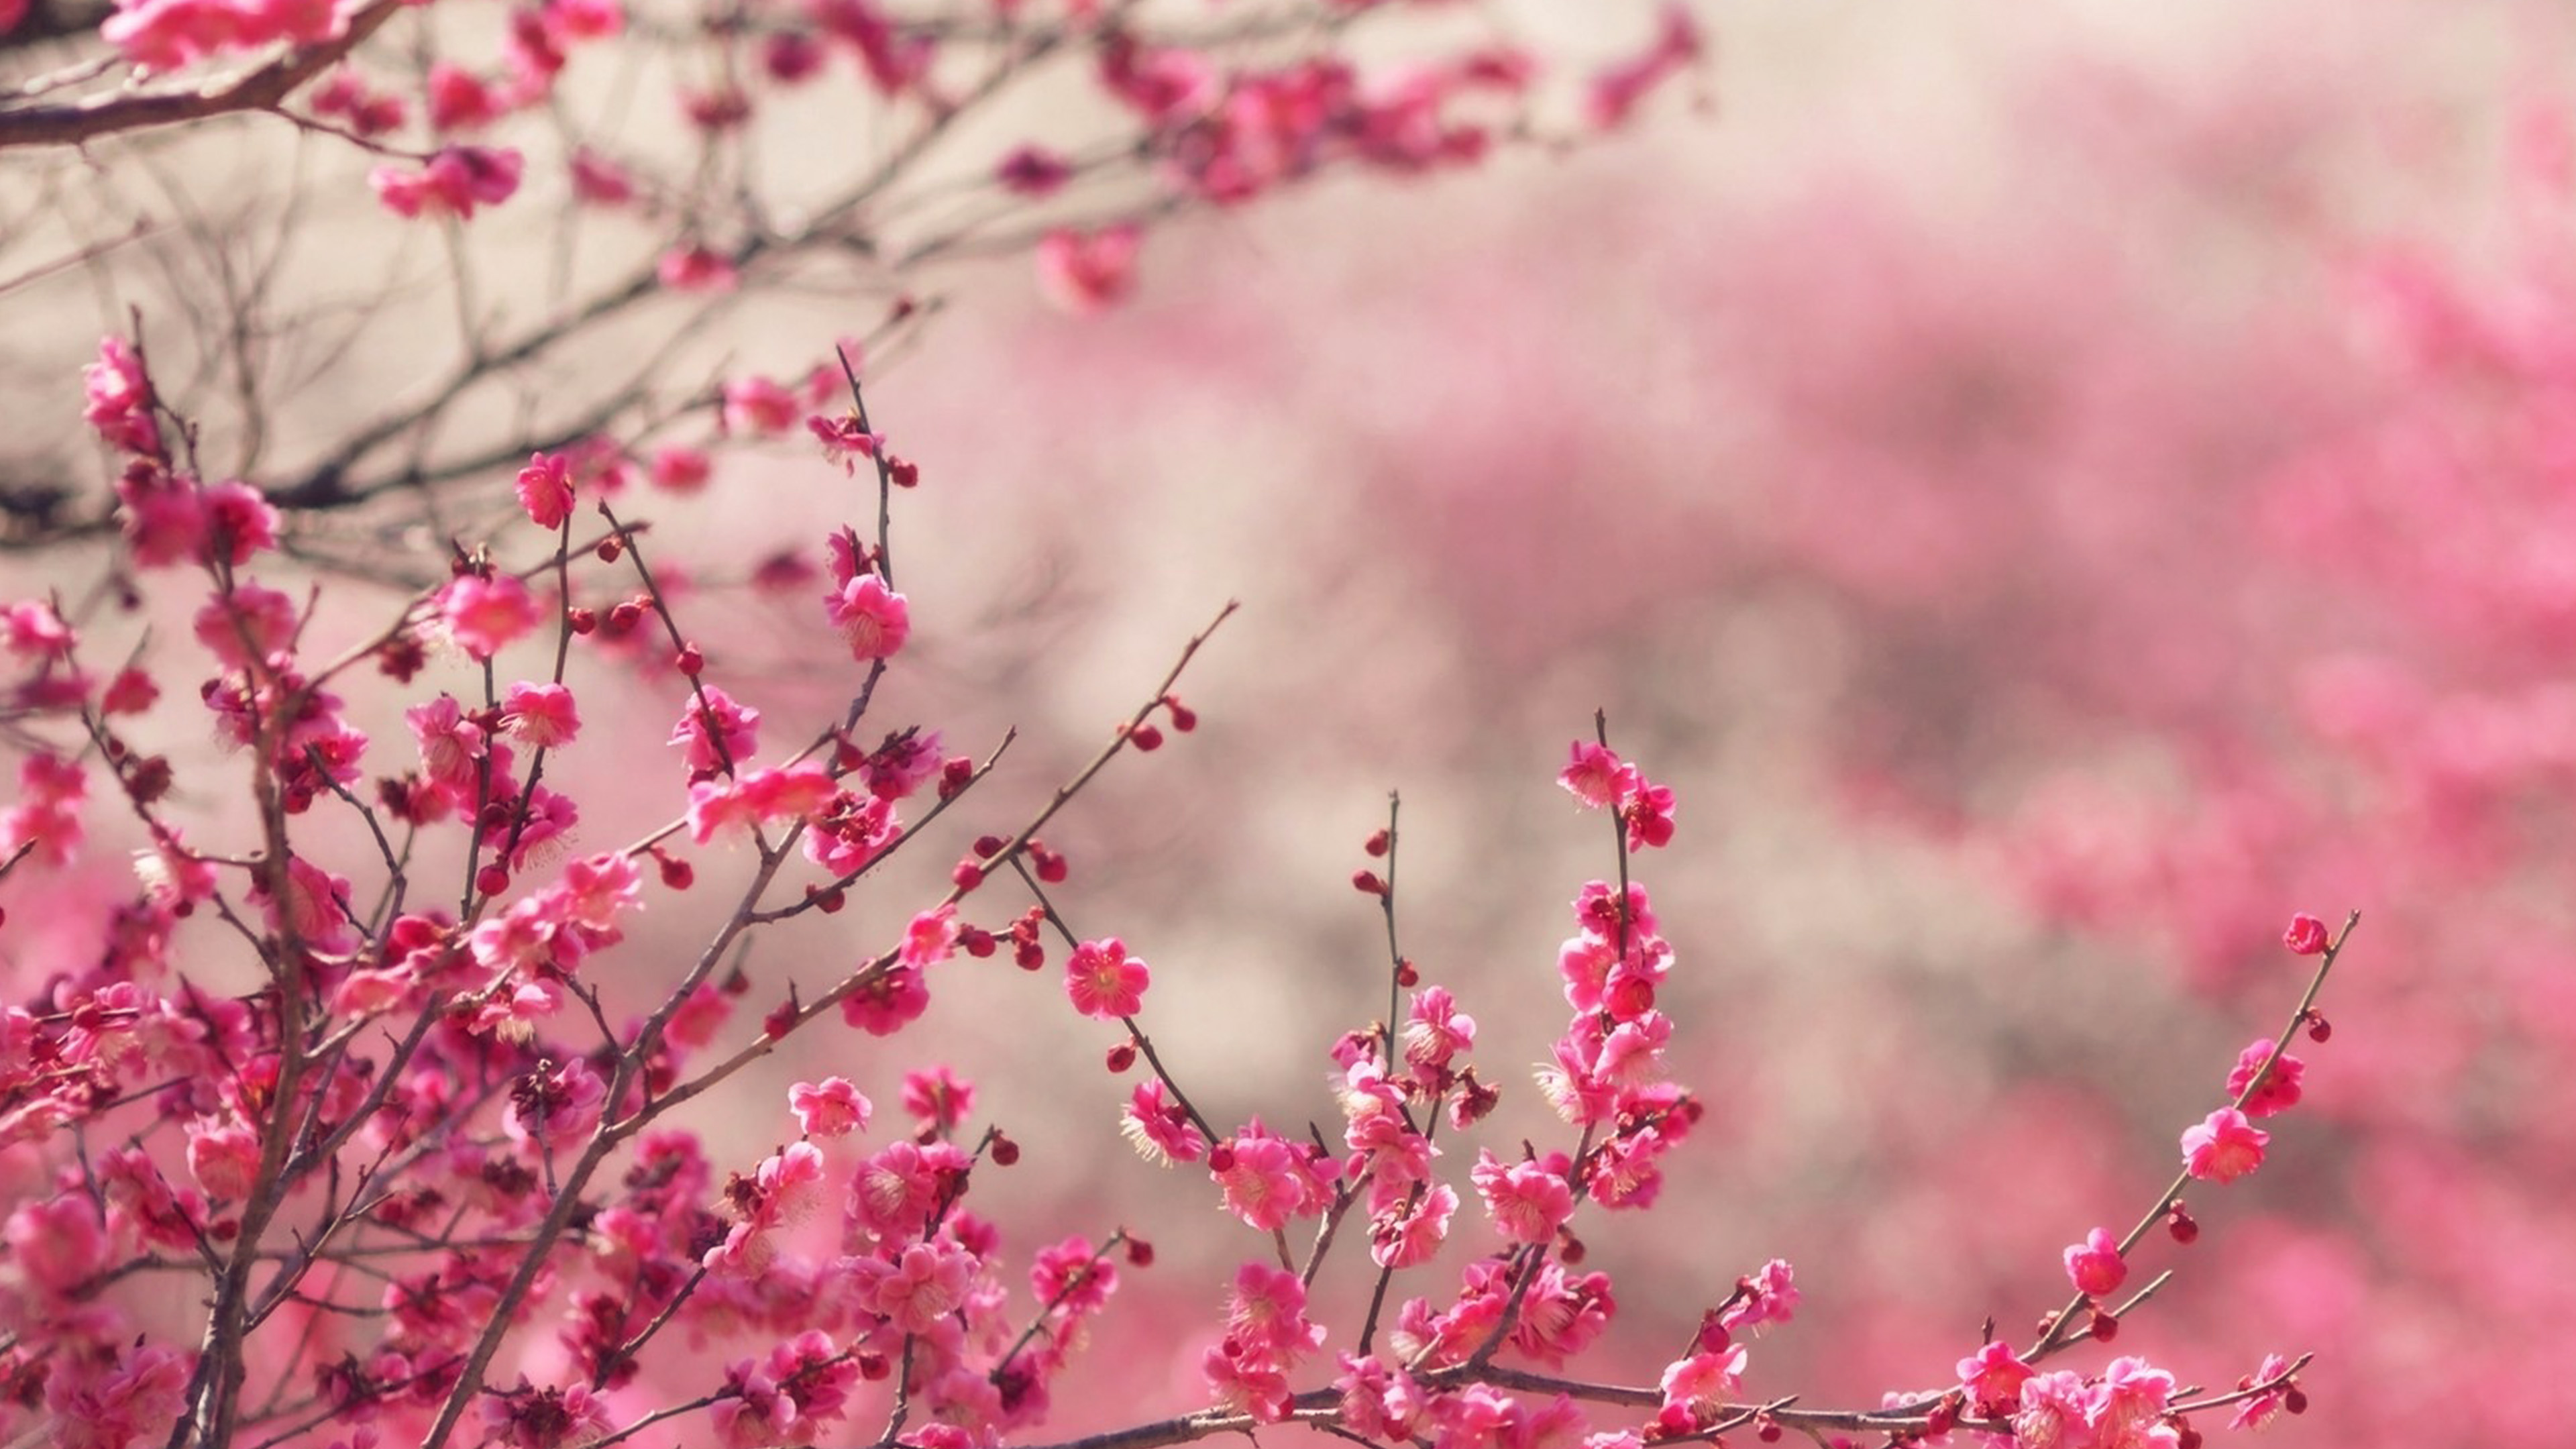 Wallpaper for desktop laptop nf14 pink blossom nature - Red flower desktop wallpaper ...